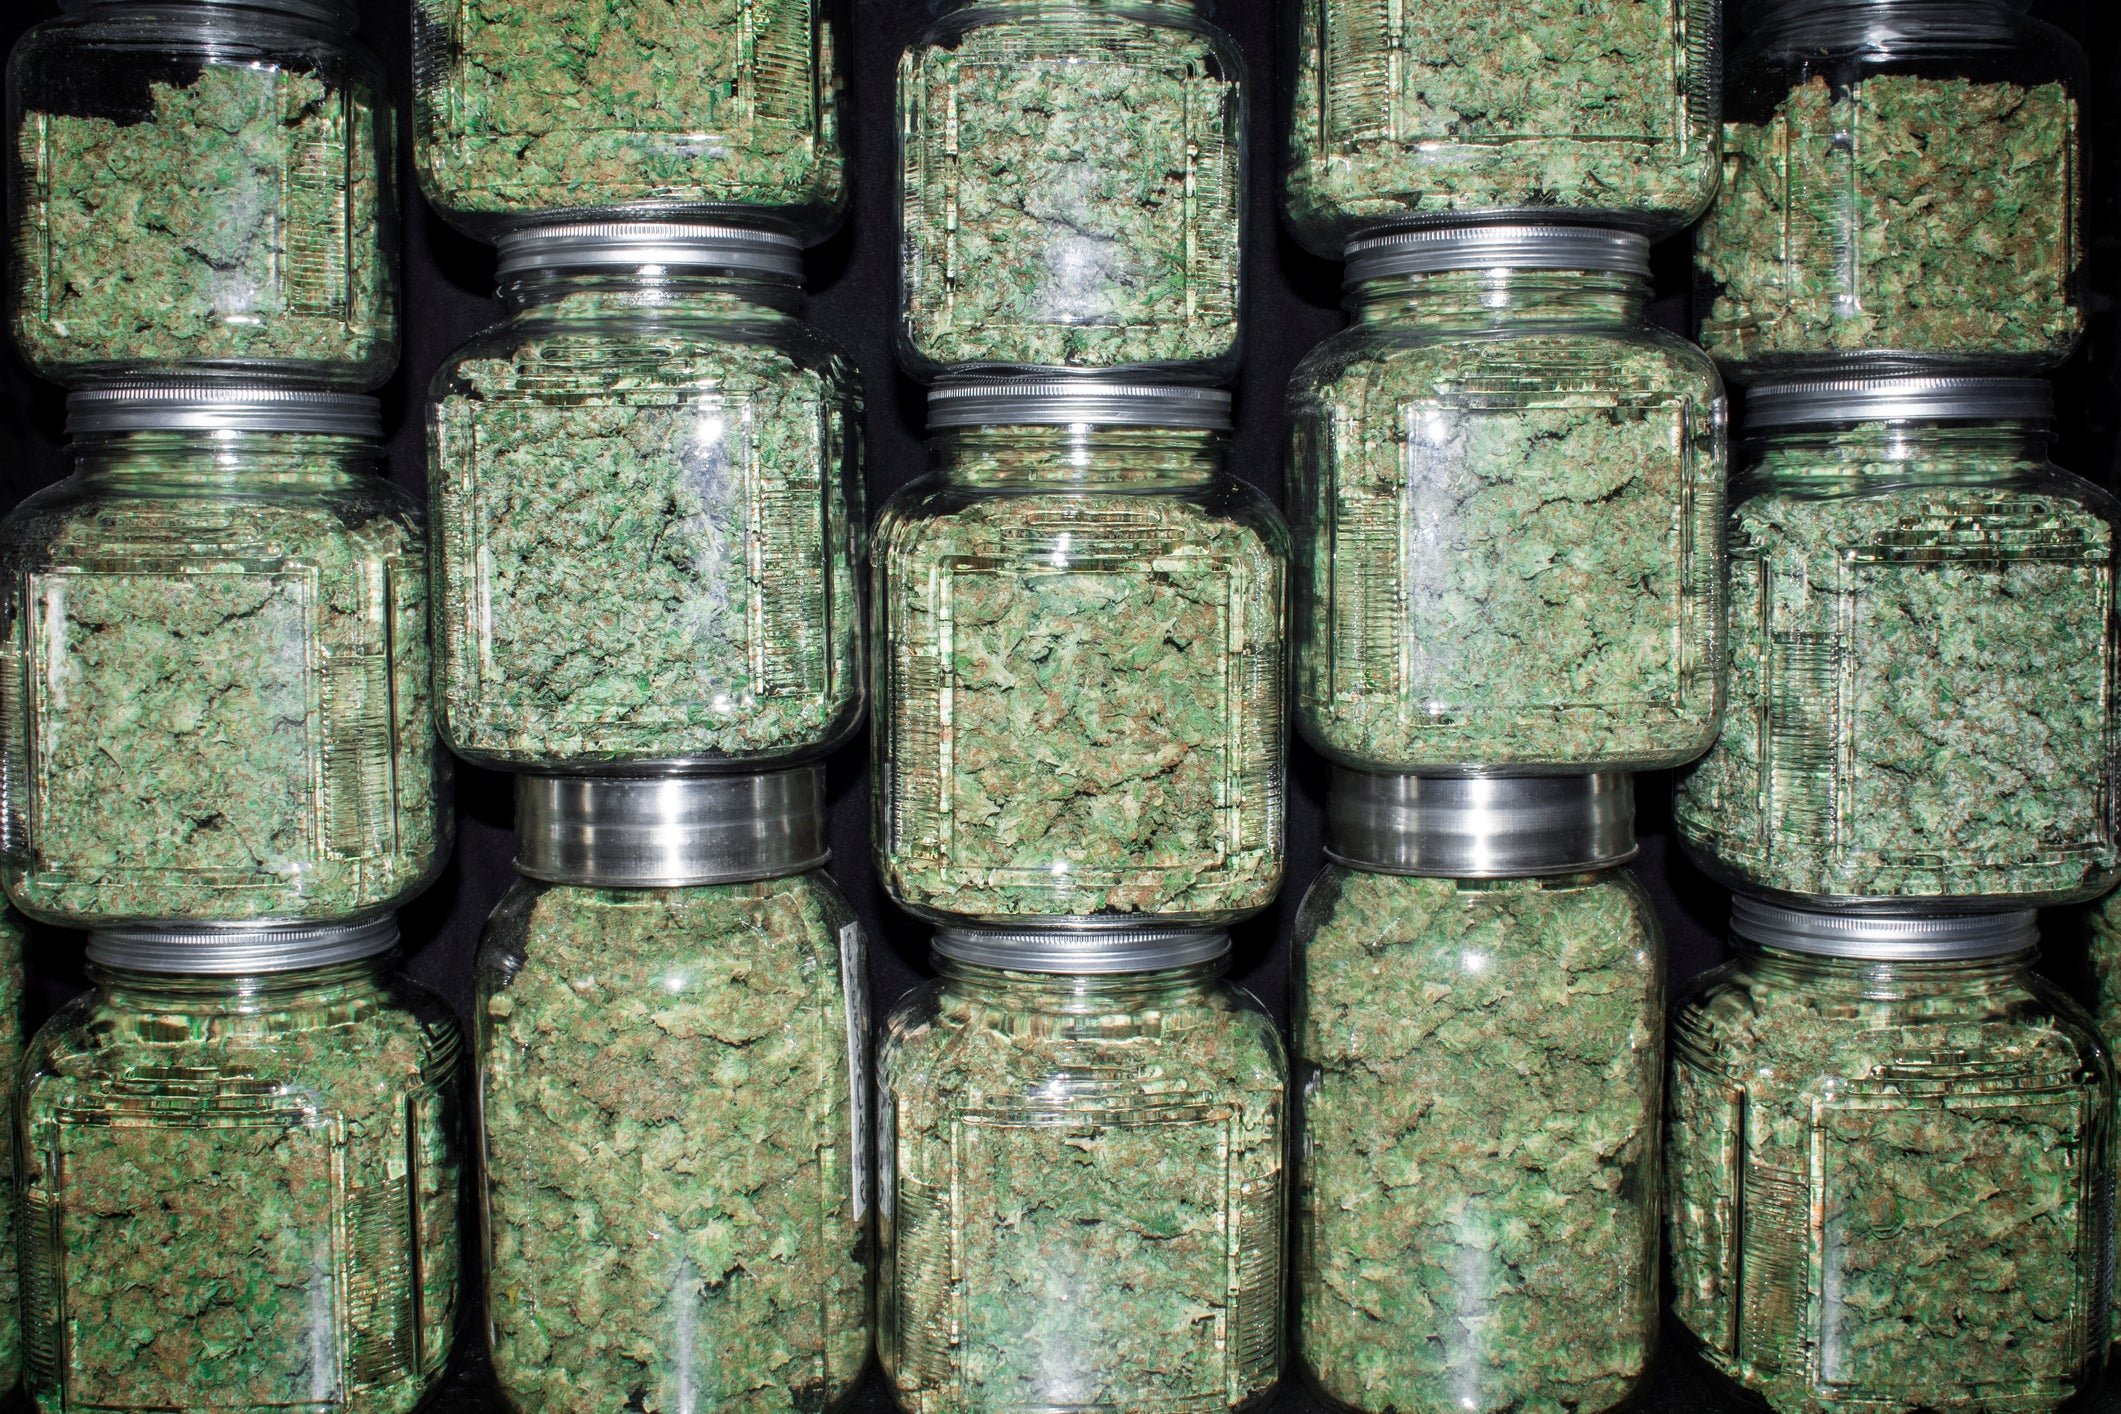 These States Are the Most Likely to Legalize Marijuana in November | The Motley Fool